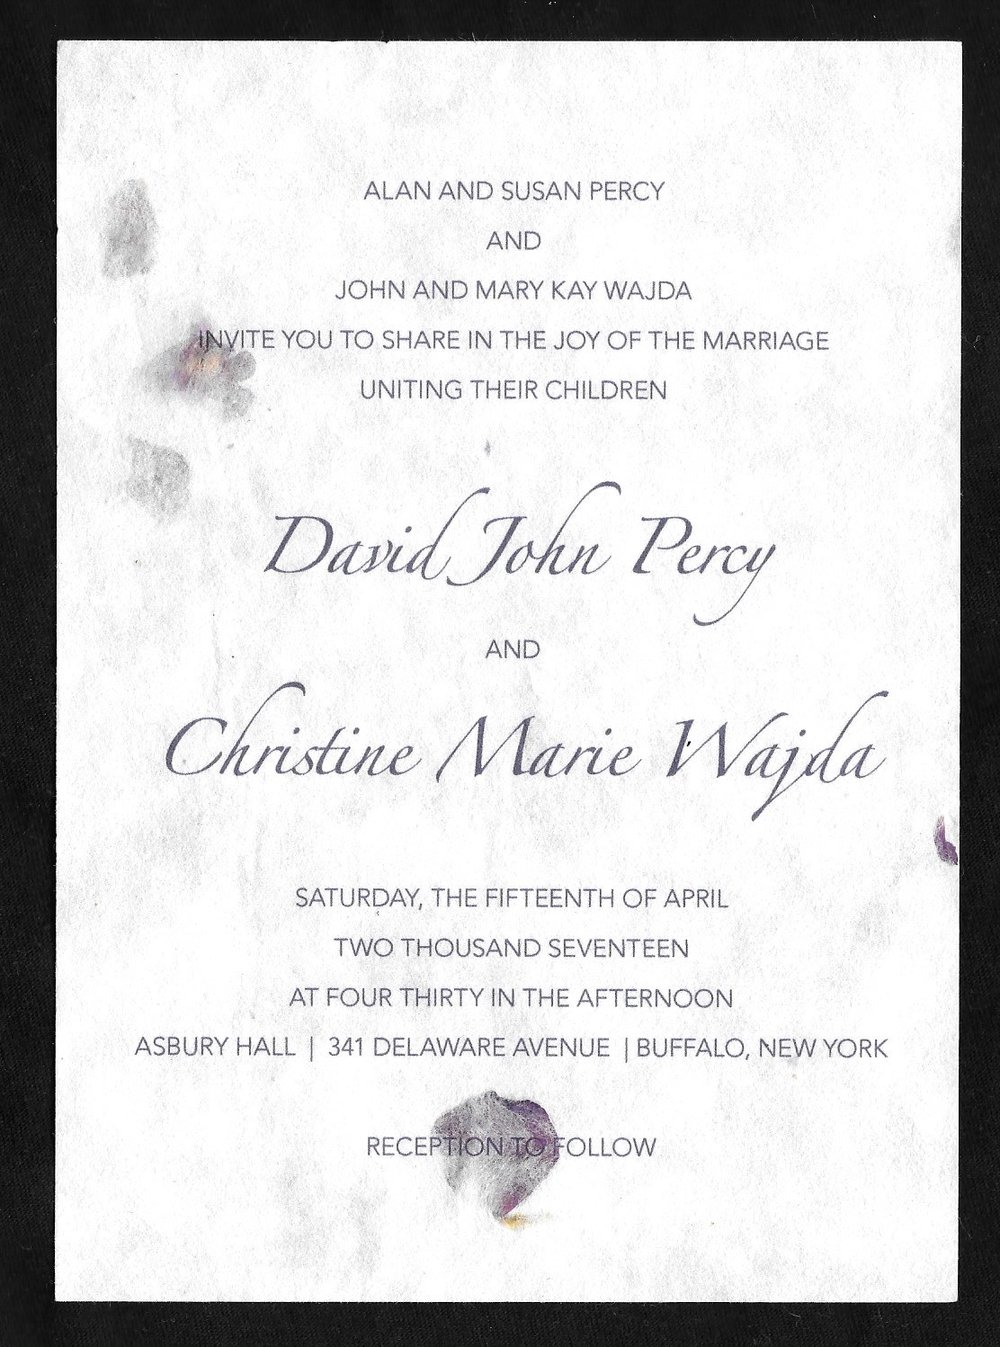 wedding invitations for David Percy & Christine Wajda